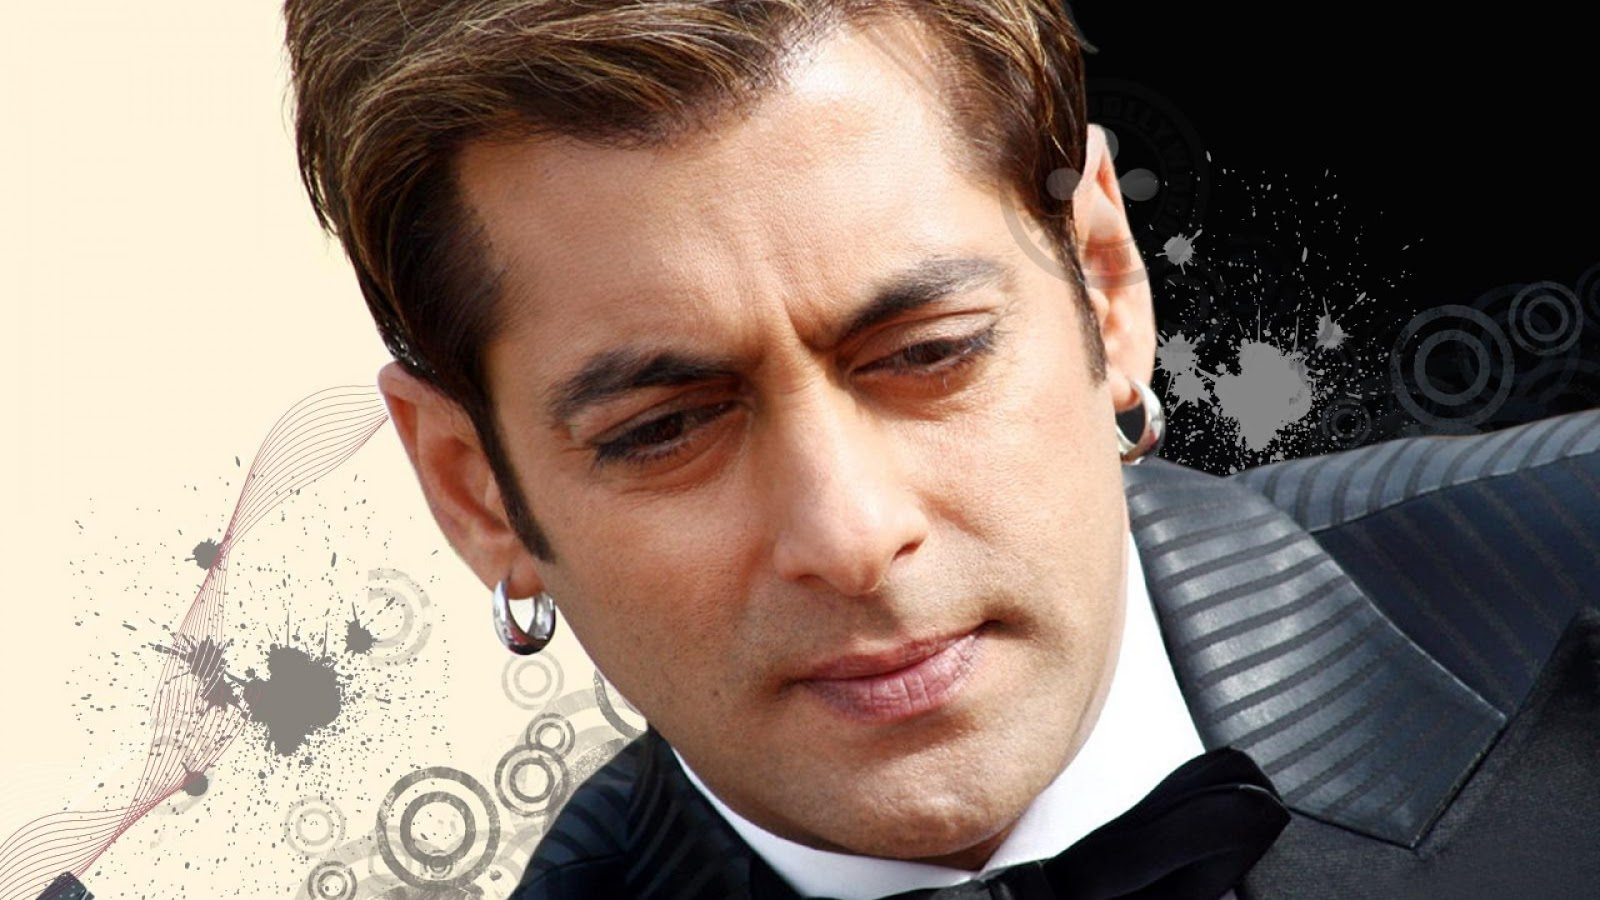 Salman Khan Hd Wallpapers 2013 Salman Khan Photos 2017